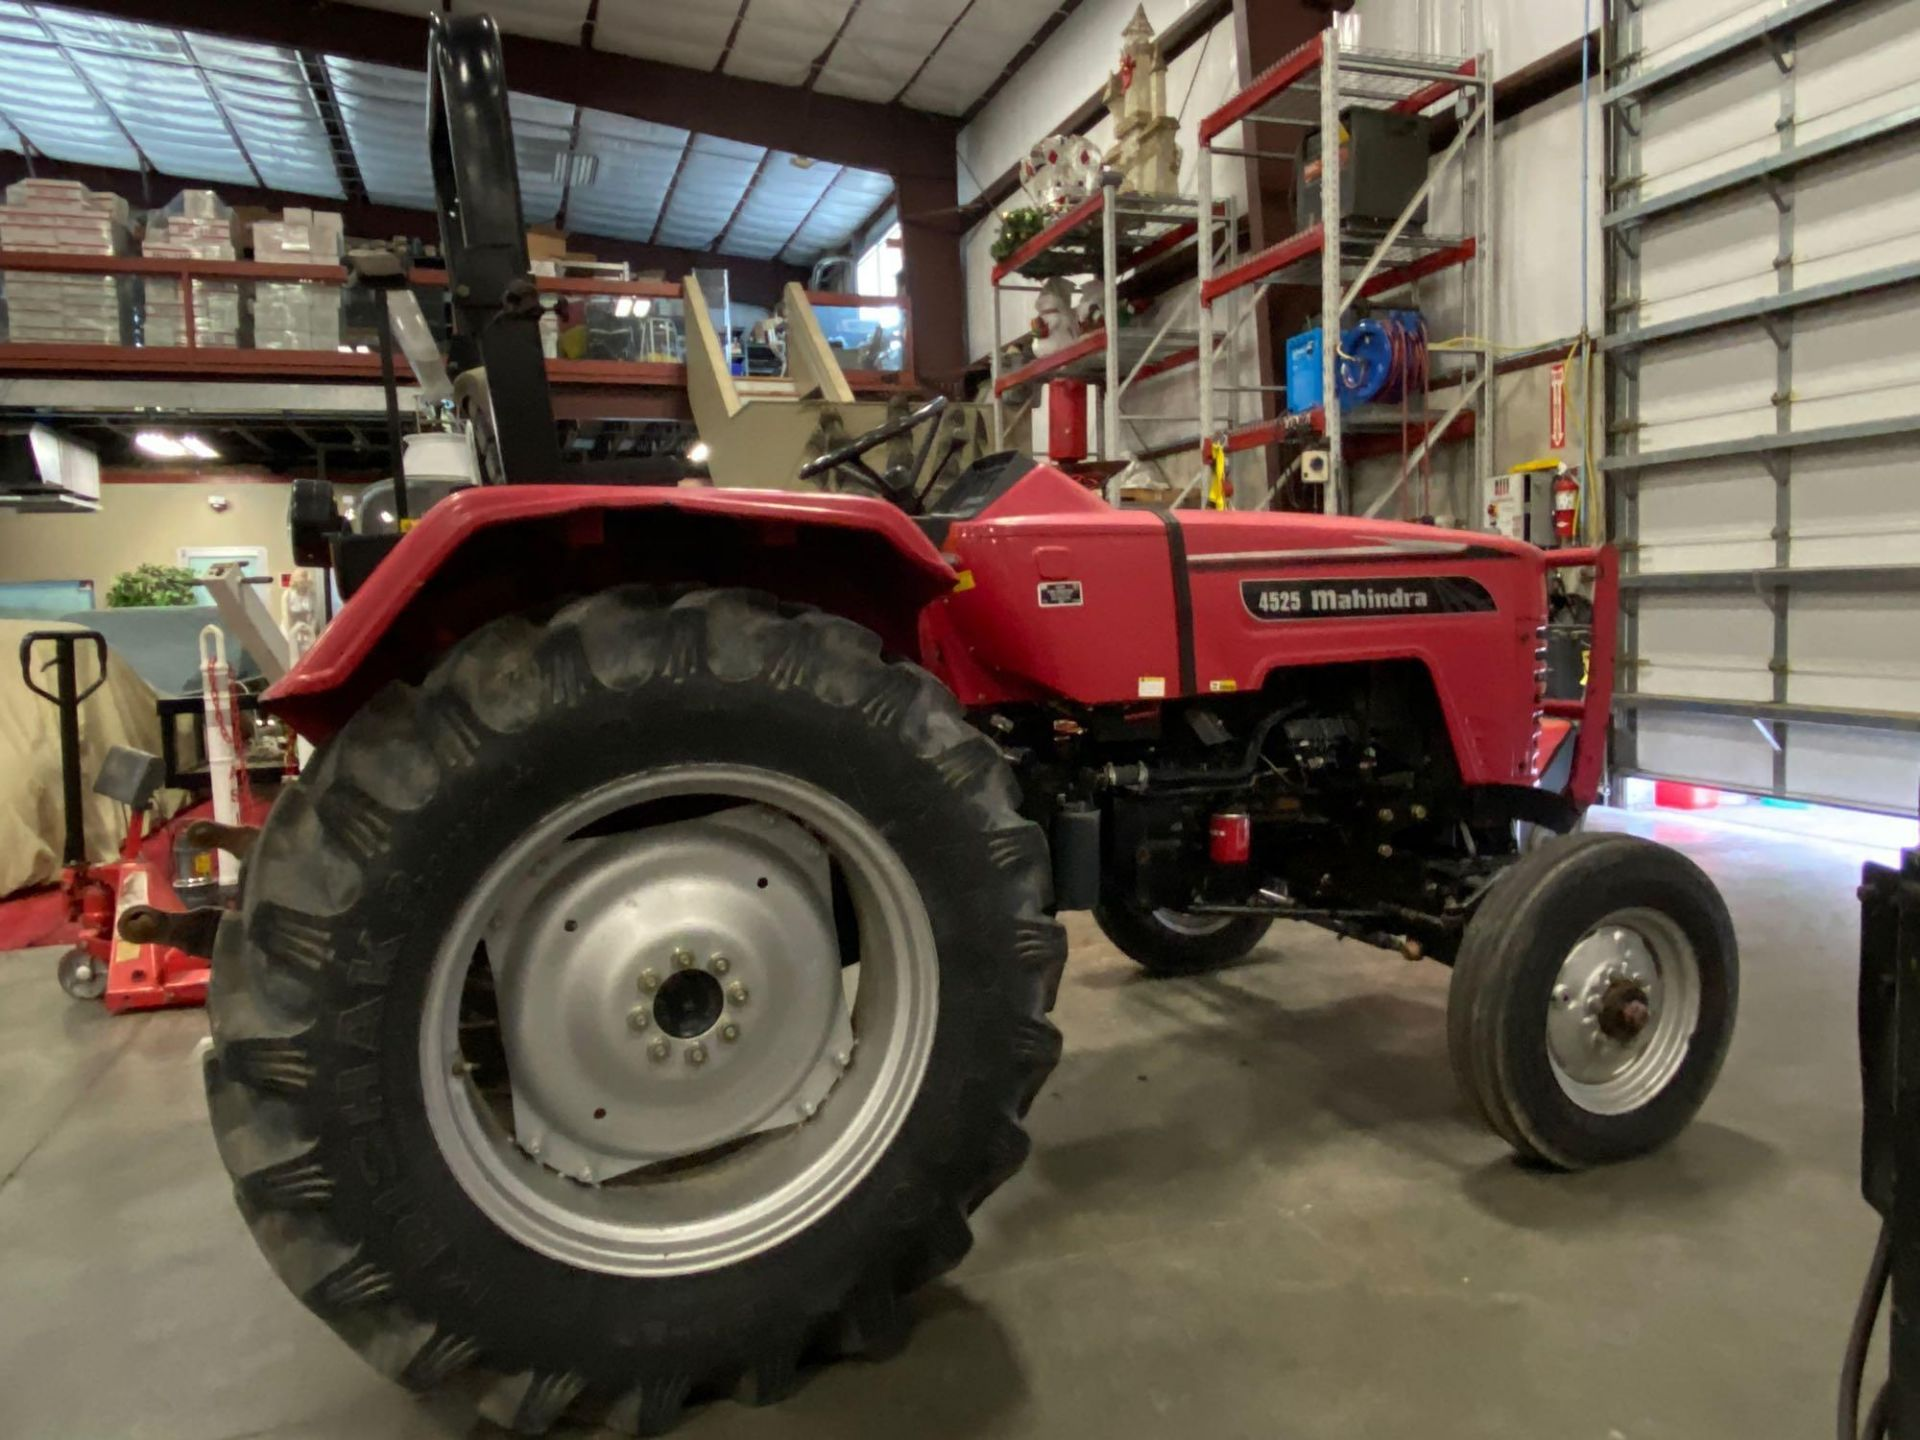 Lot 30A - 2012 MAHINDRA 4525 TRACTOR, PTO, DIESEL, RUNS AND OPERATES